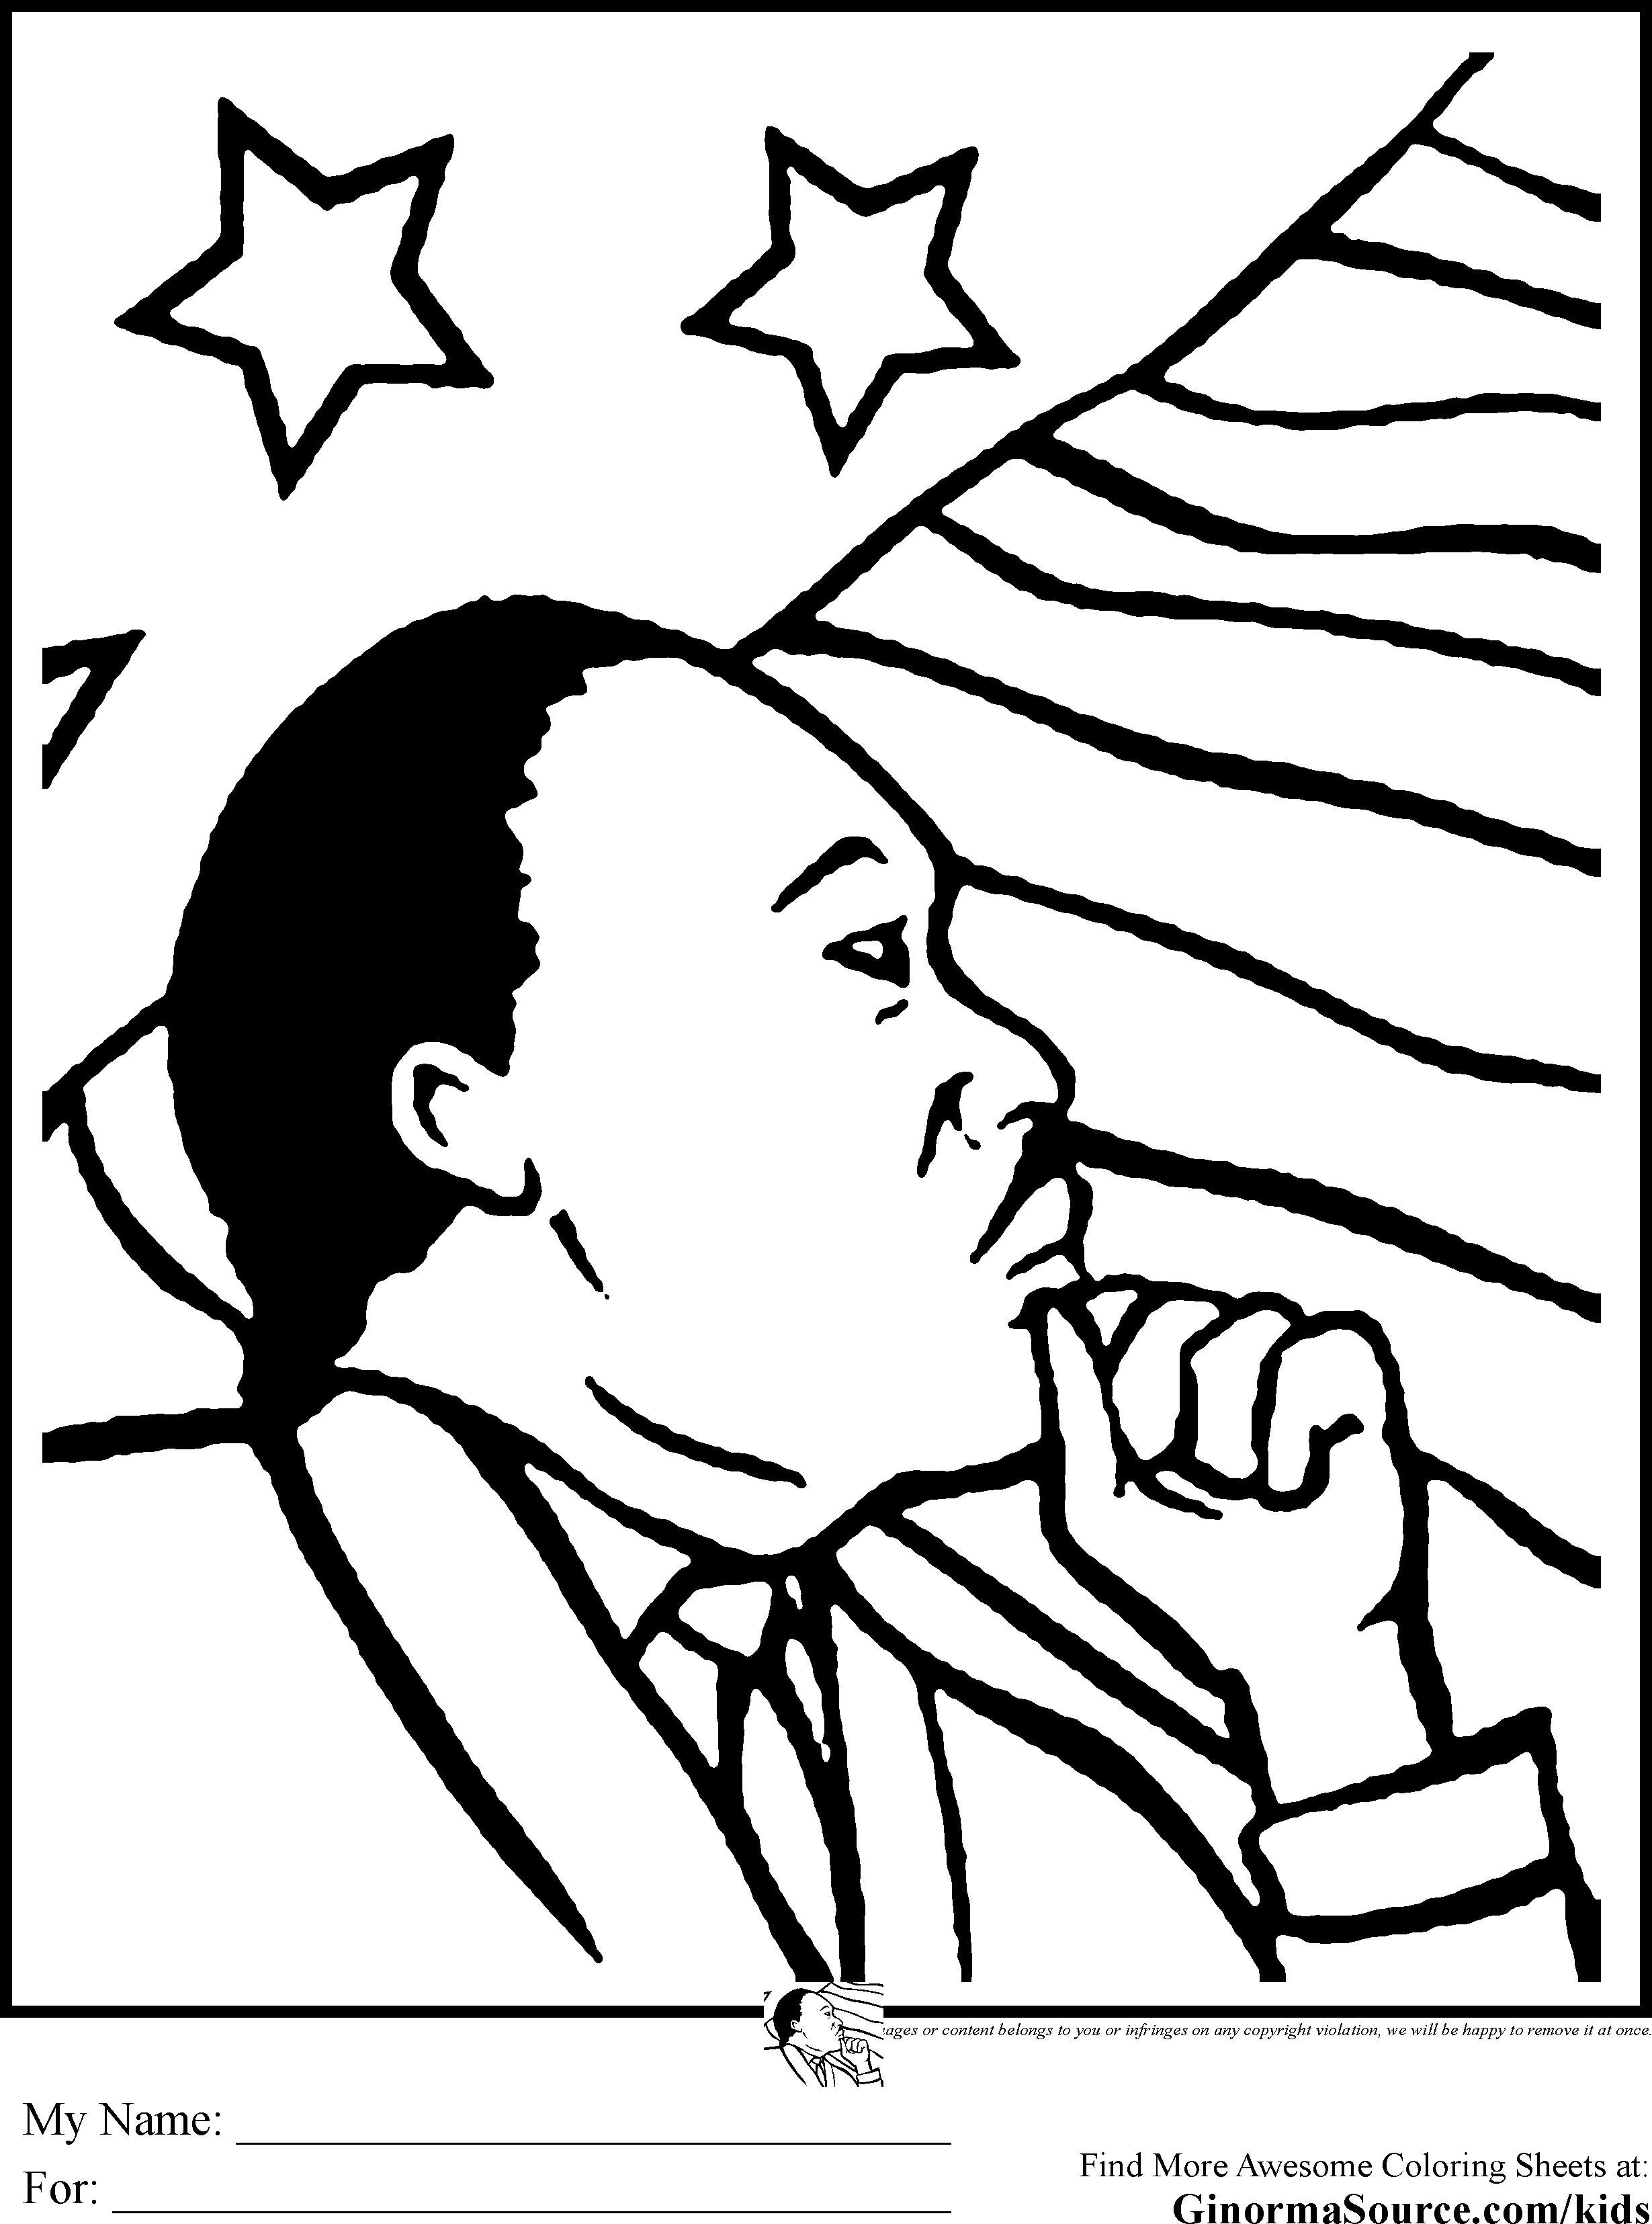 printable pictures of martin luther king free mlk coloring pages at getcoloringscom free printable pictures martin of king luther